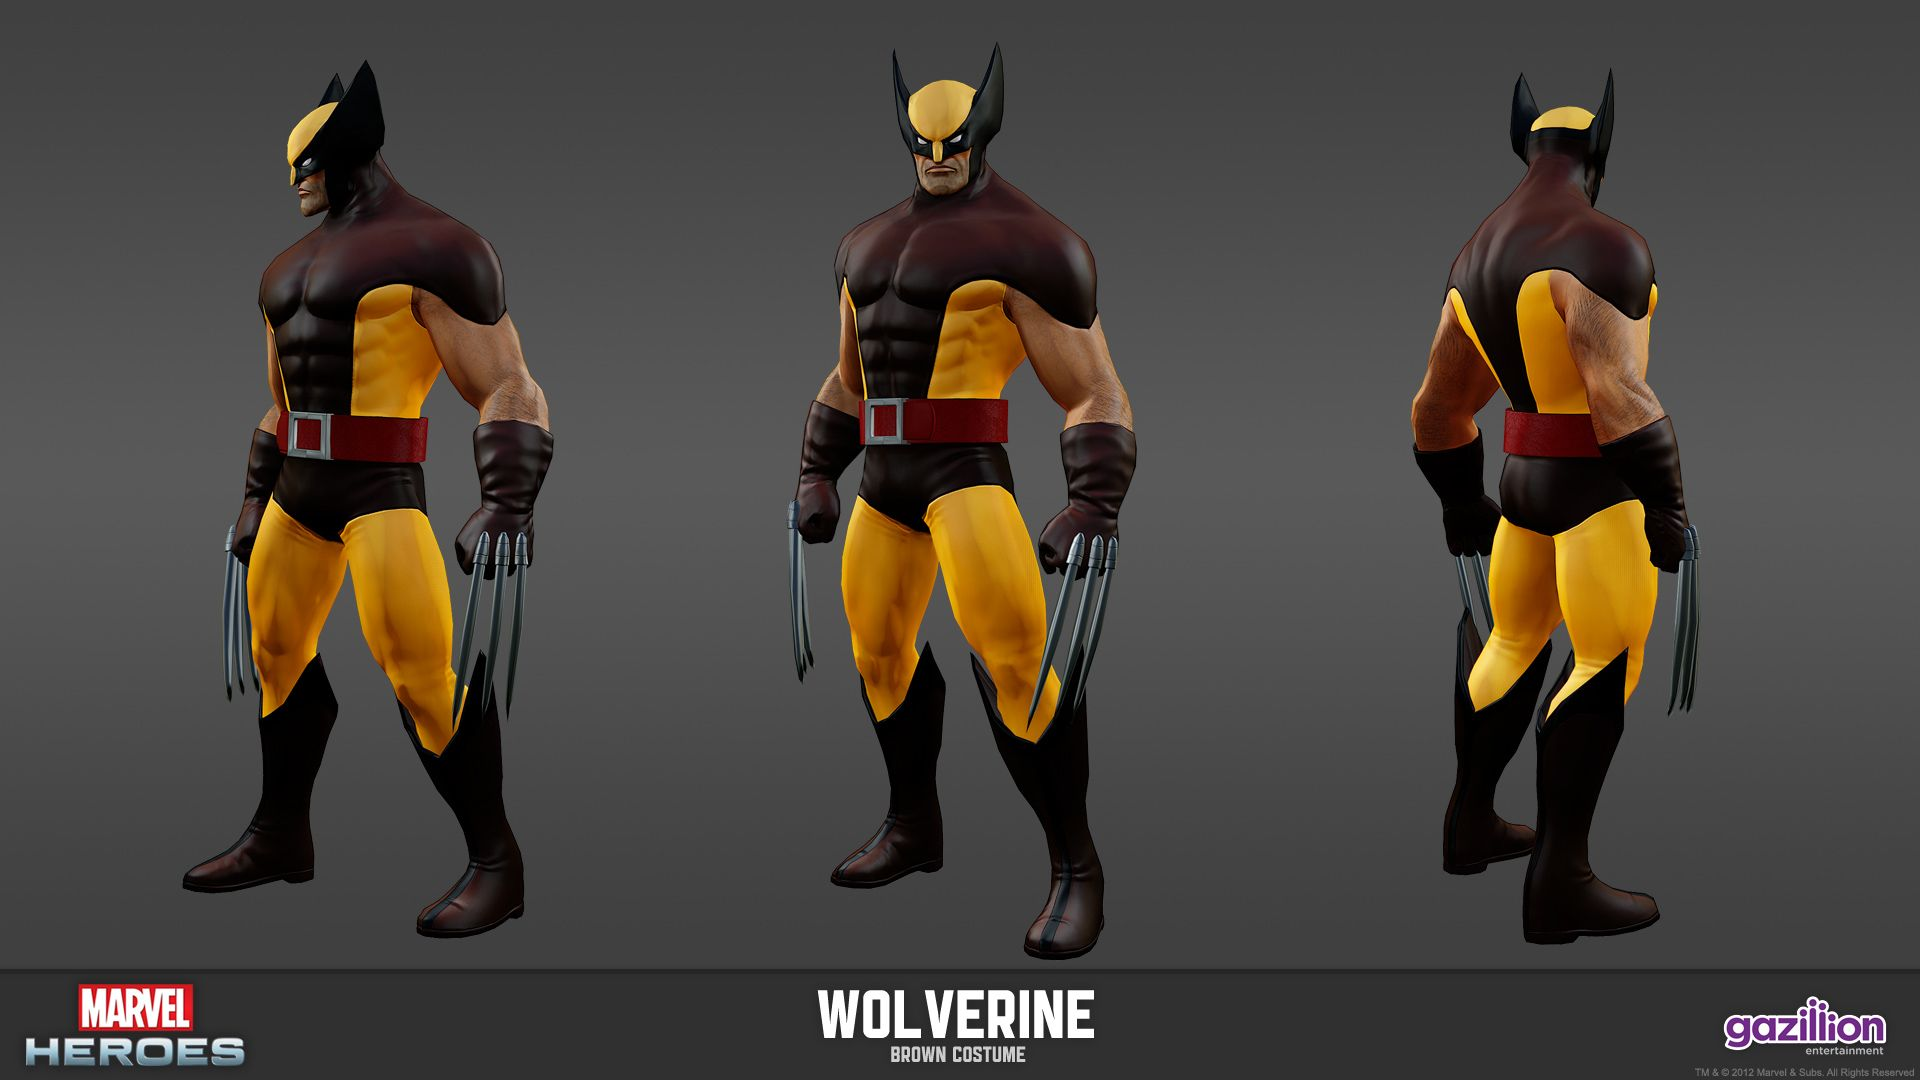 Wolverine - Brown Costume | Marvel Heroes Model Sheets | Pinterest ...